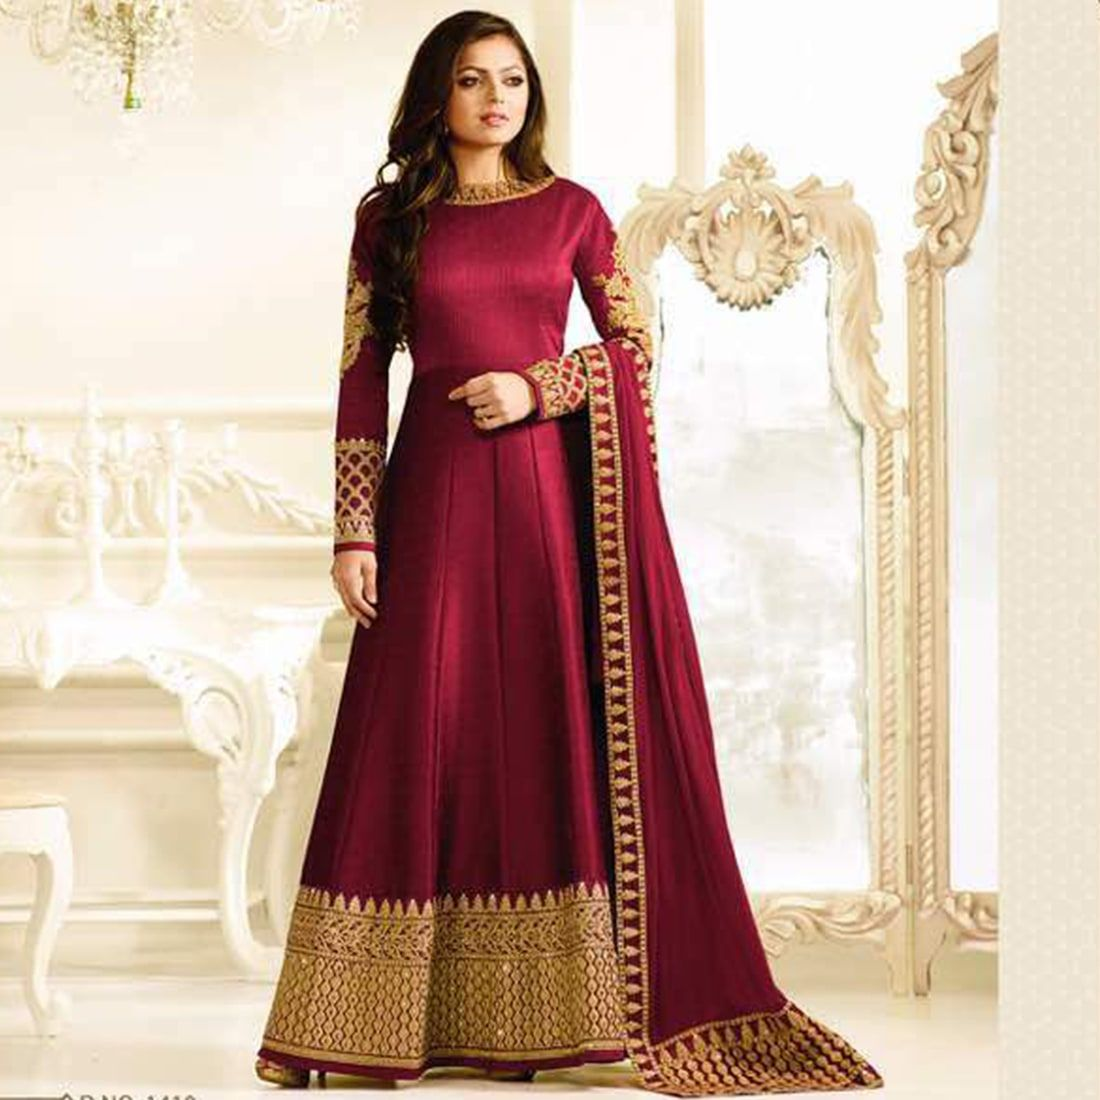 f1a8748b96 Buy Craftsvilla Maroon Color Bhagalpuri Silk Embroidered Frock Style  Semi-stitched Anarkali Suit online. ✯ 100% authentic products, ✯ Hand  curated, ...